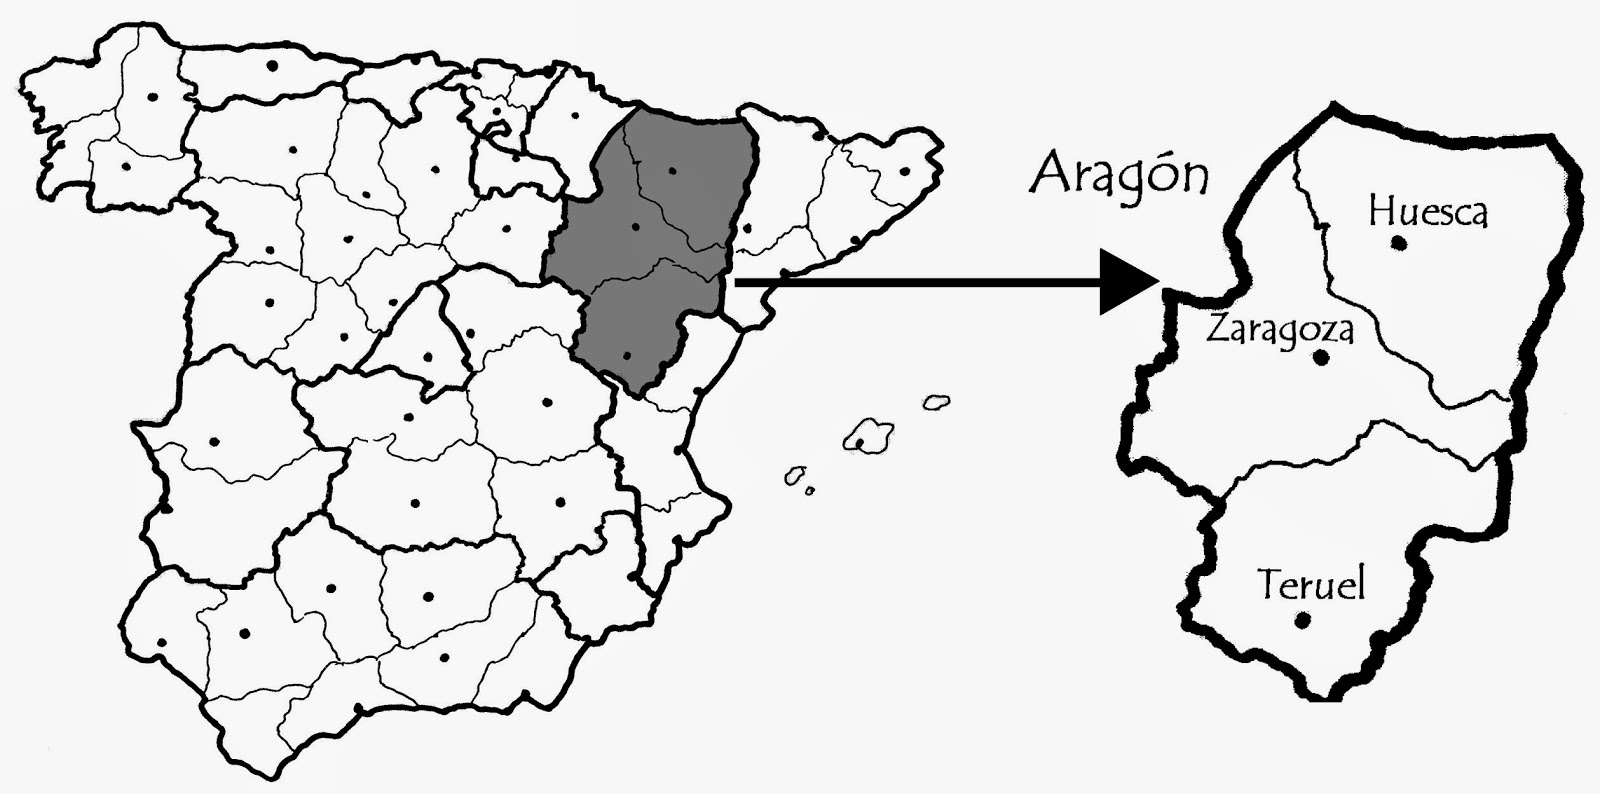 map of Aragon region in Spain